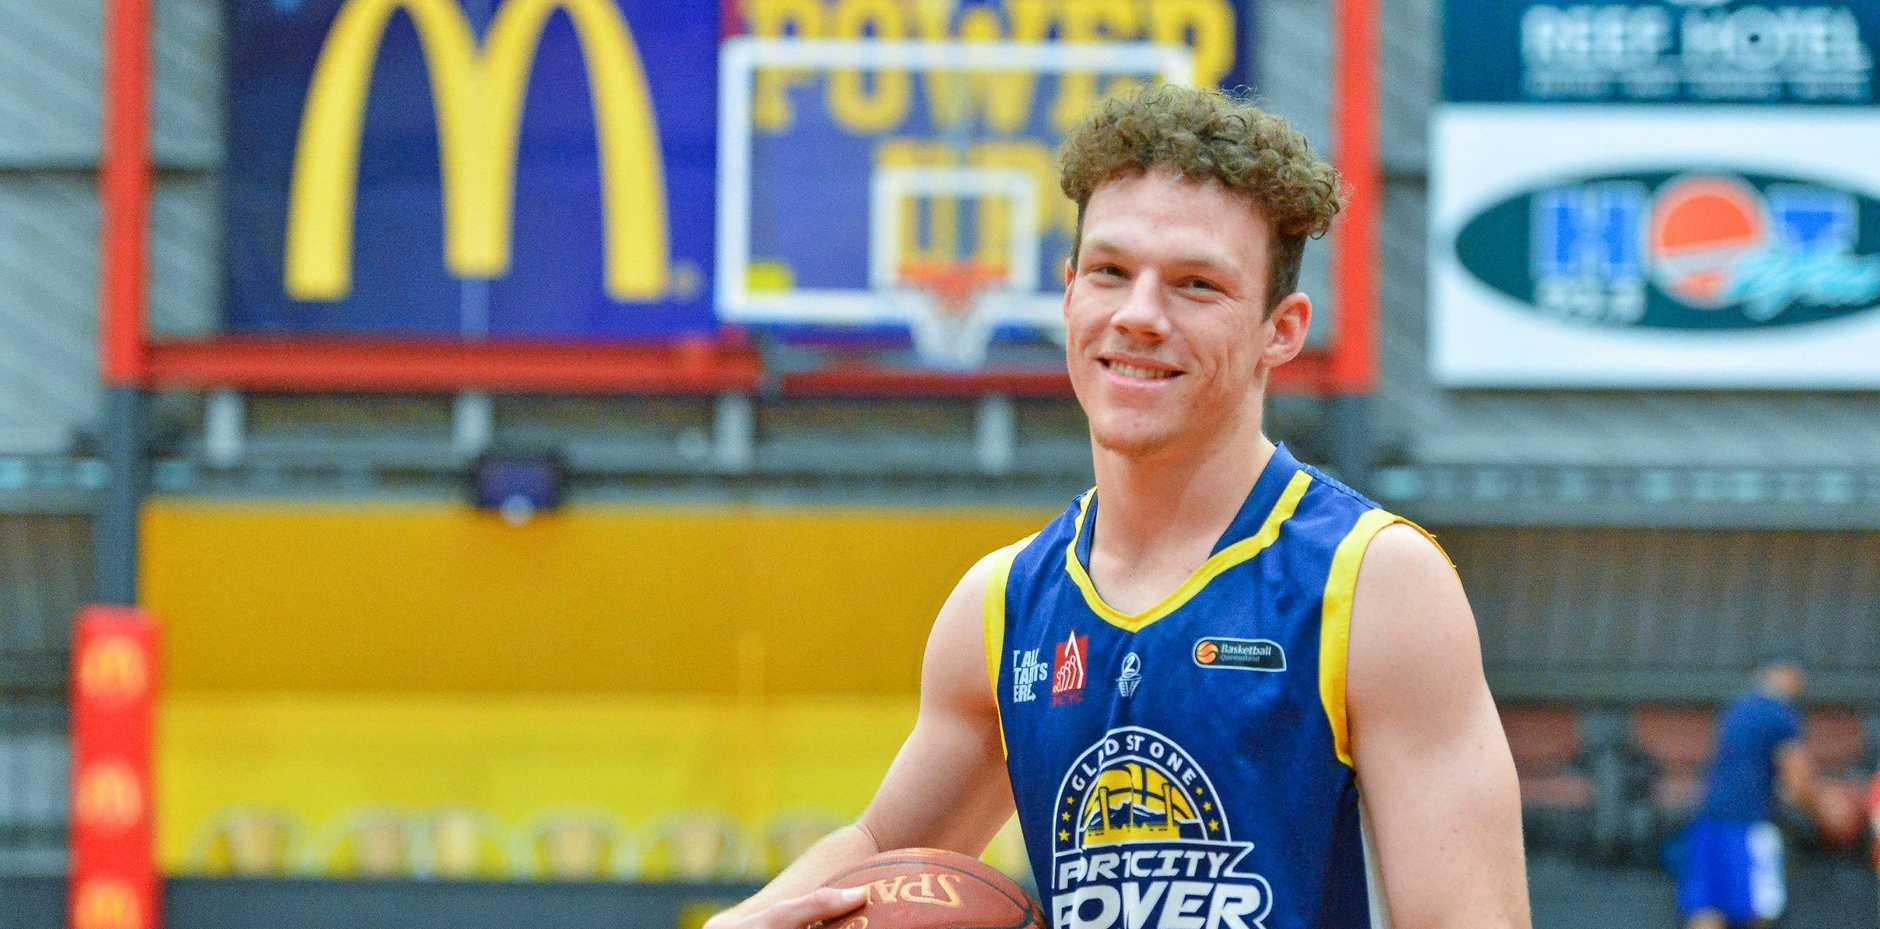 CONTINUING THE CHARGE: Dylan Owen has signed up for another year with Port City Power.